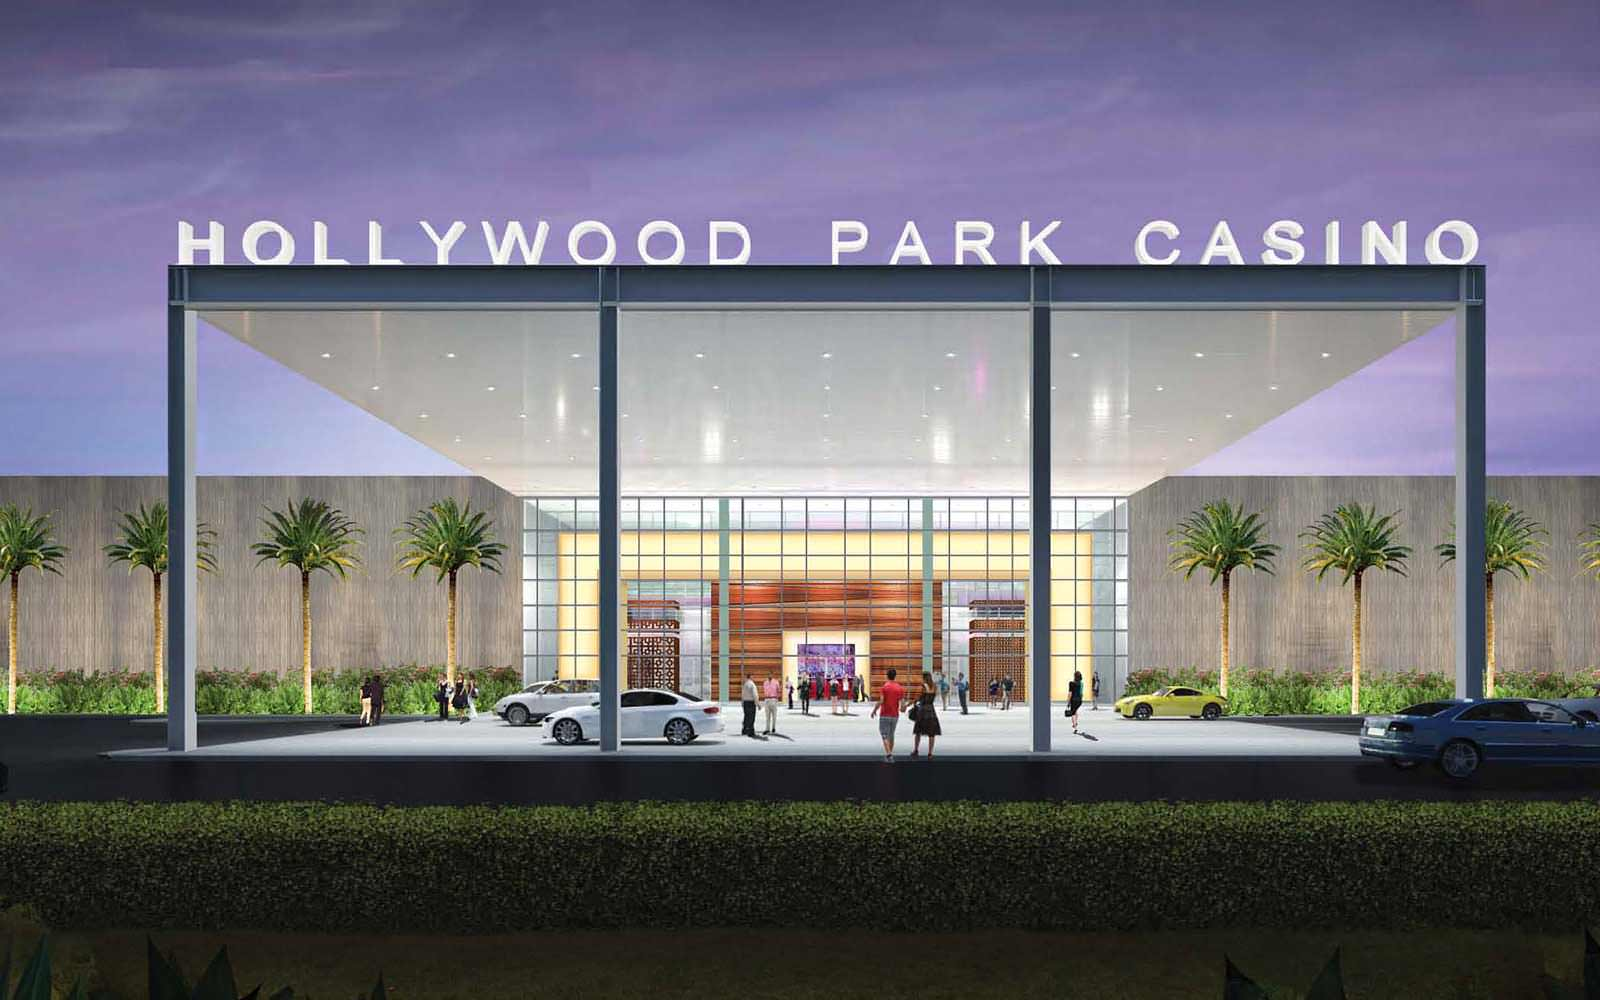 Hollywood Park Casino Rendering